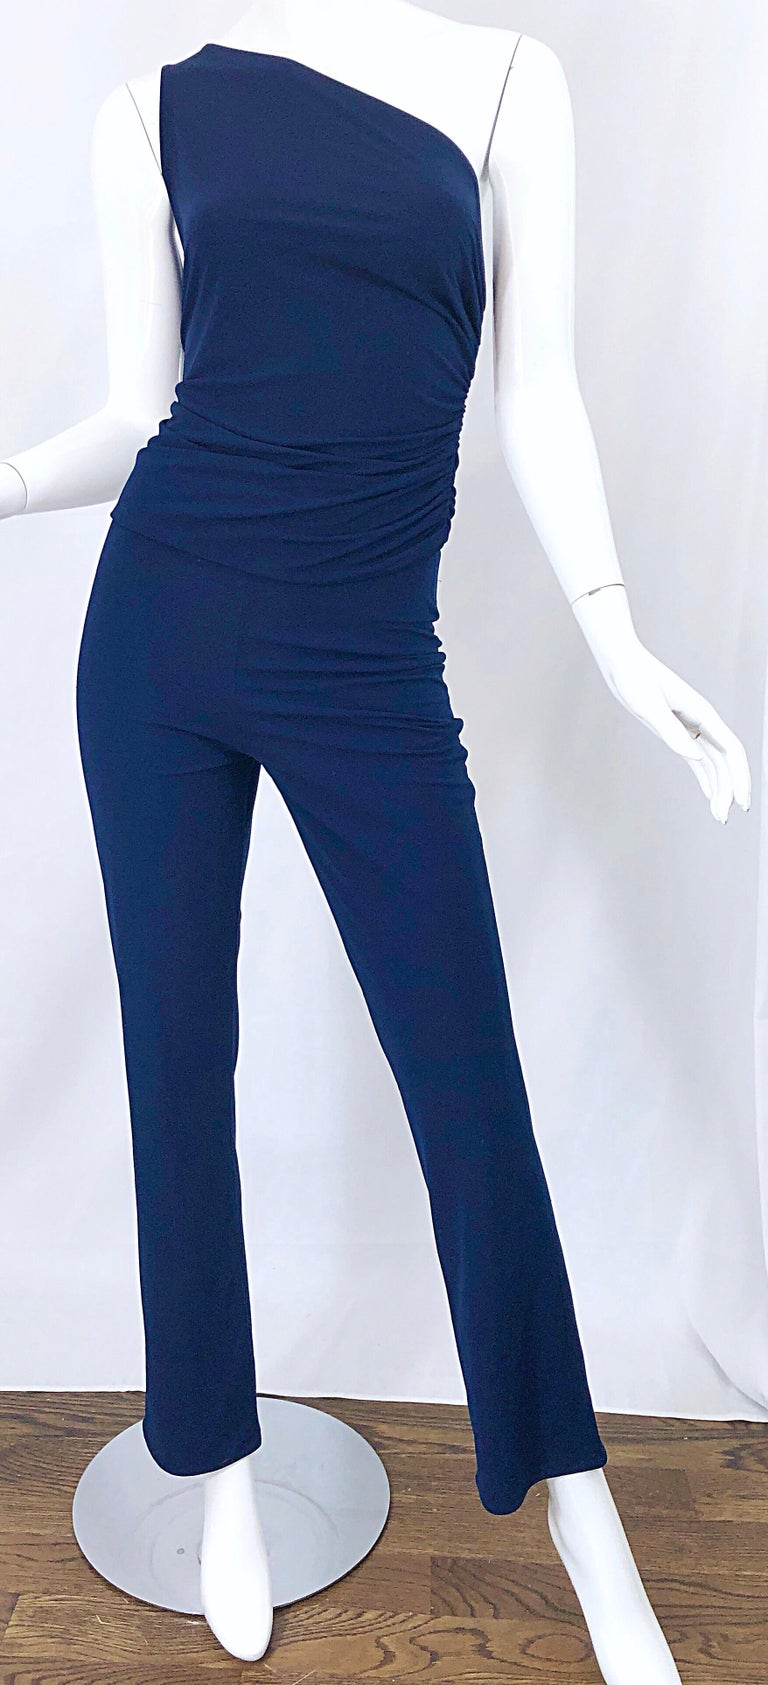 Vintage Norma Kamali OMO 1980s Navy Blue One Shoulder 80s Top and Pants Jumpsuit For Sale 3